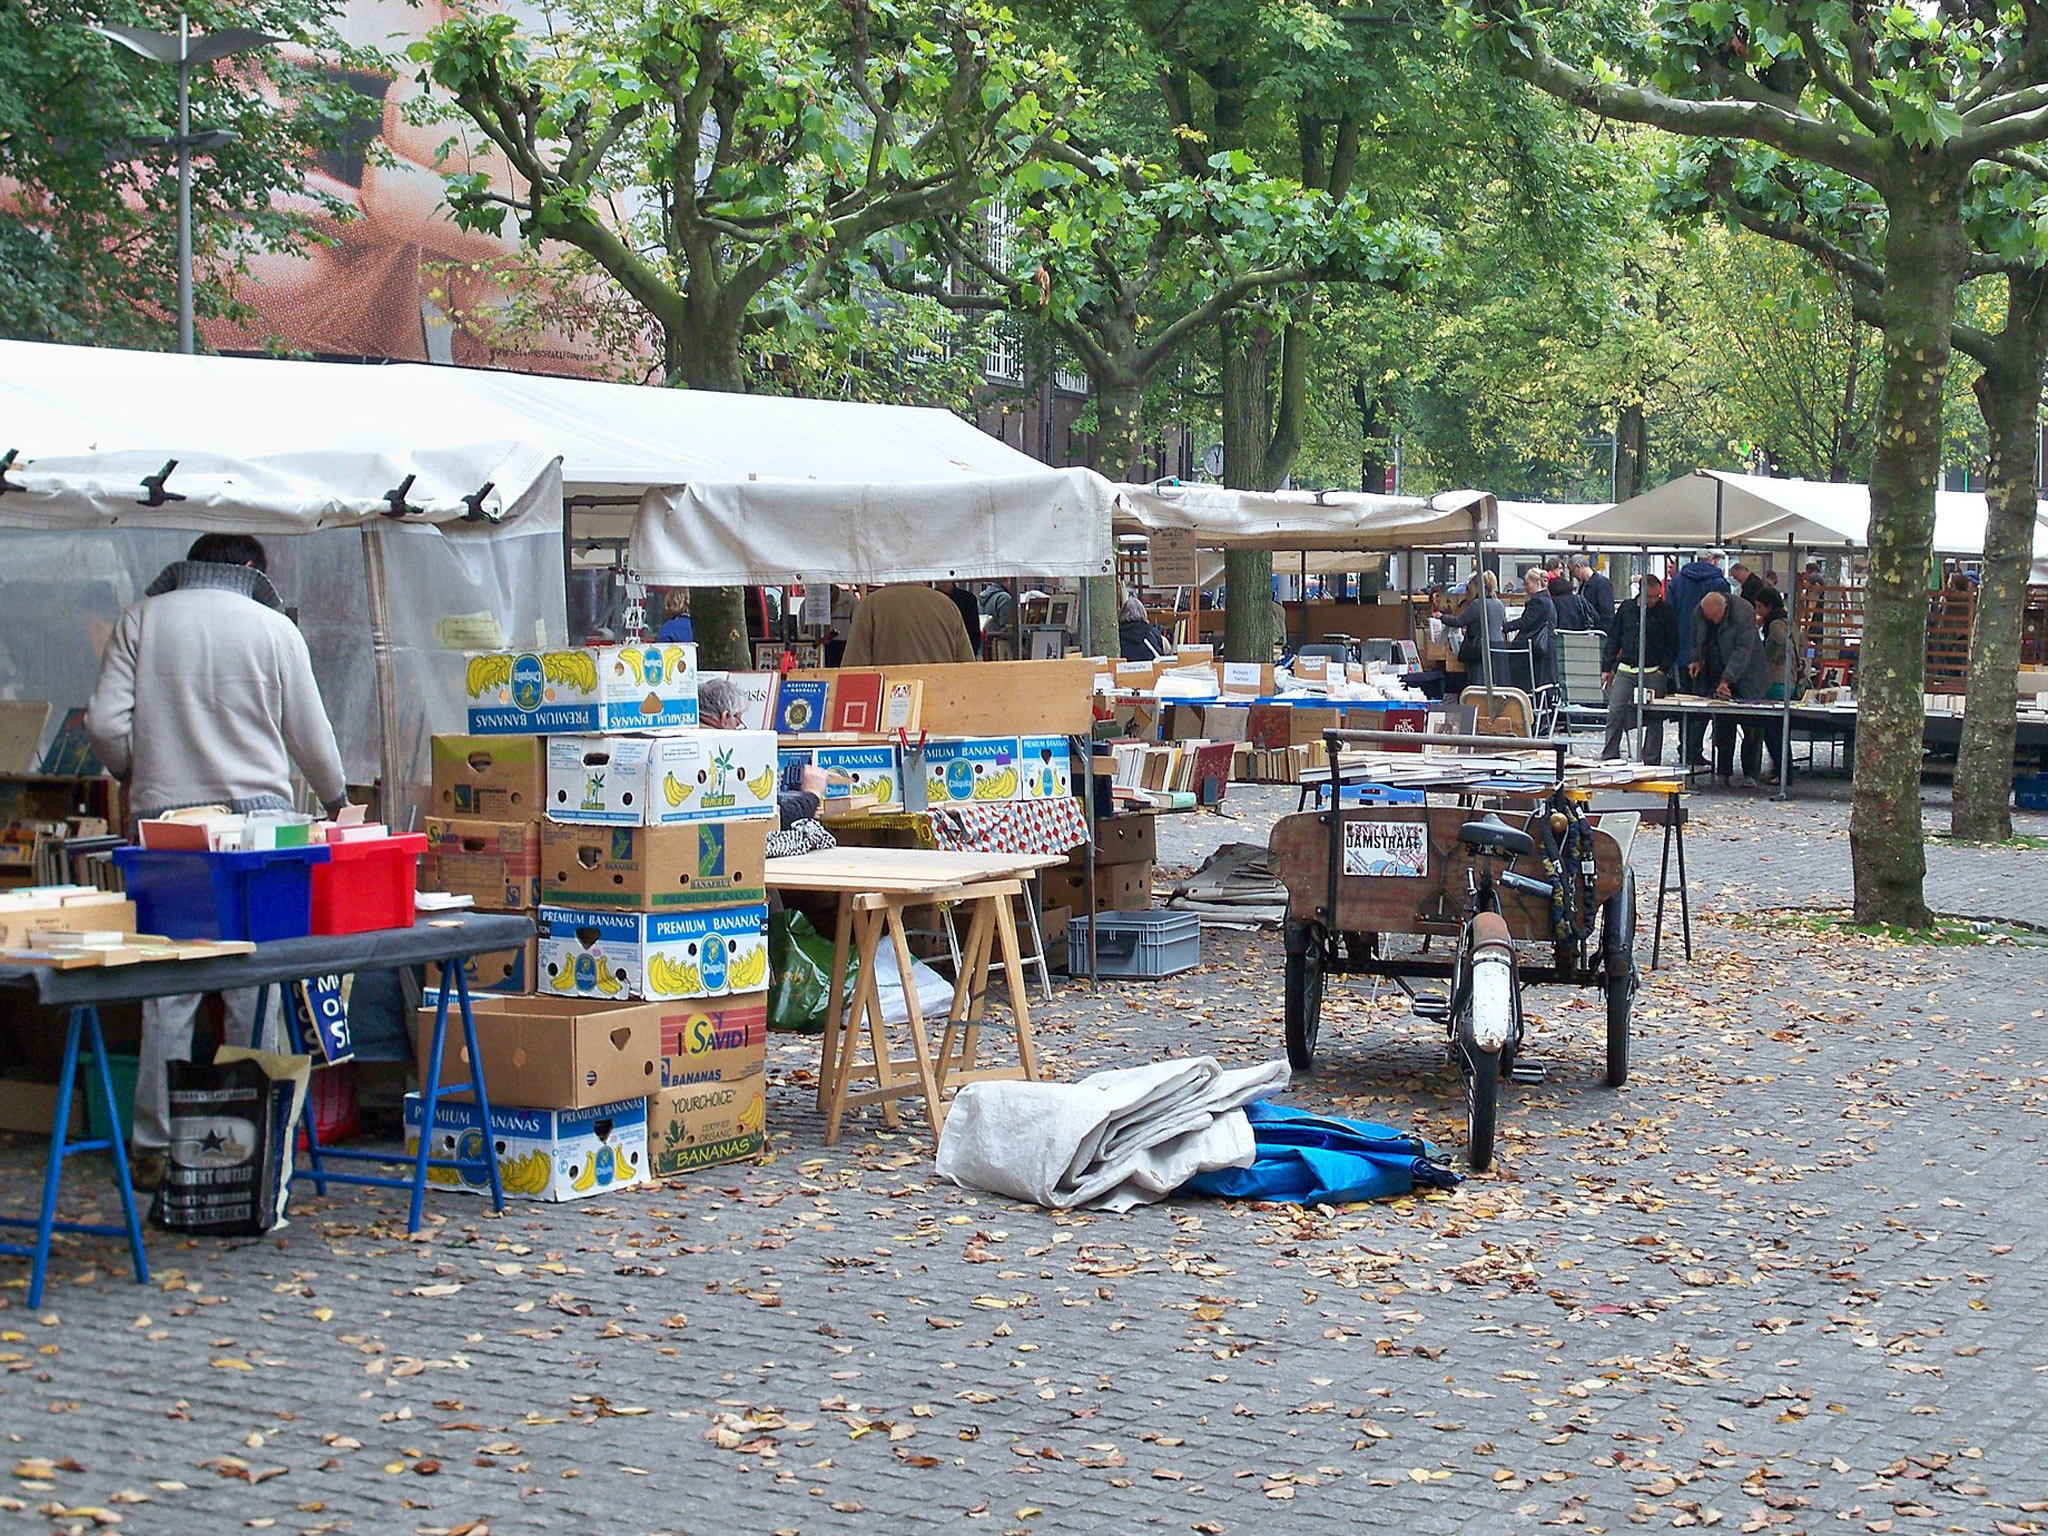 A book market on Spui square